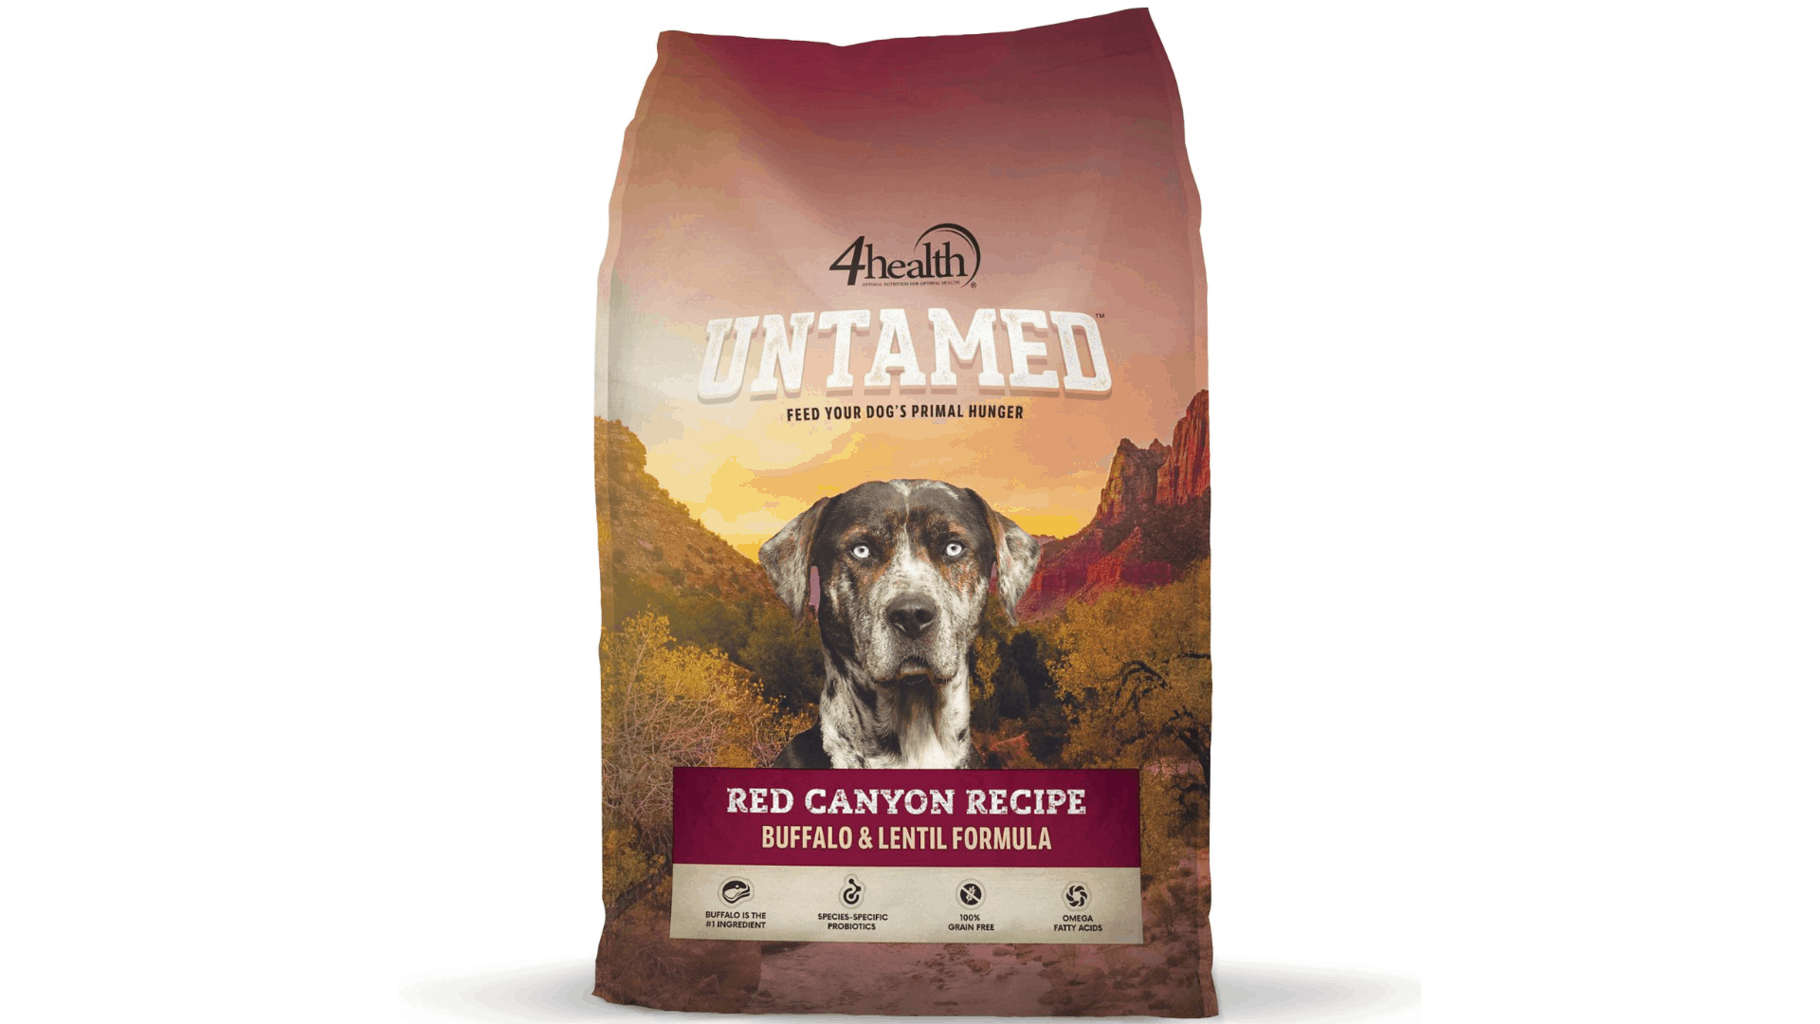 2020 4health Dog Food Review: Healthy & Affordable Natural Dog Food 9